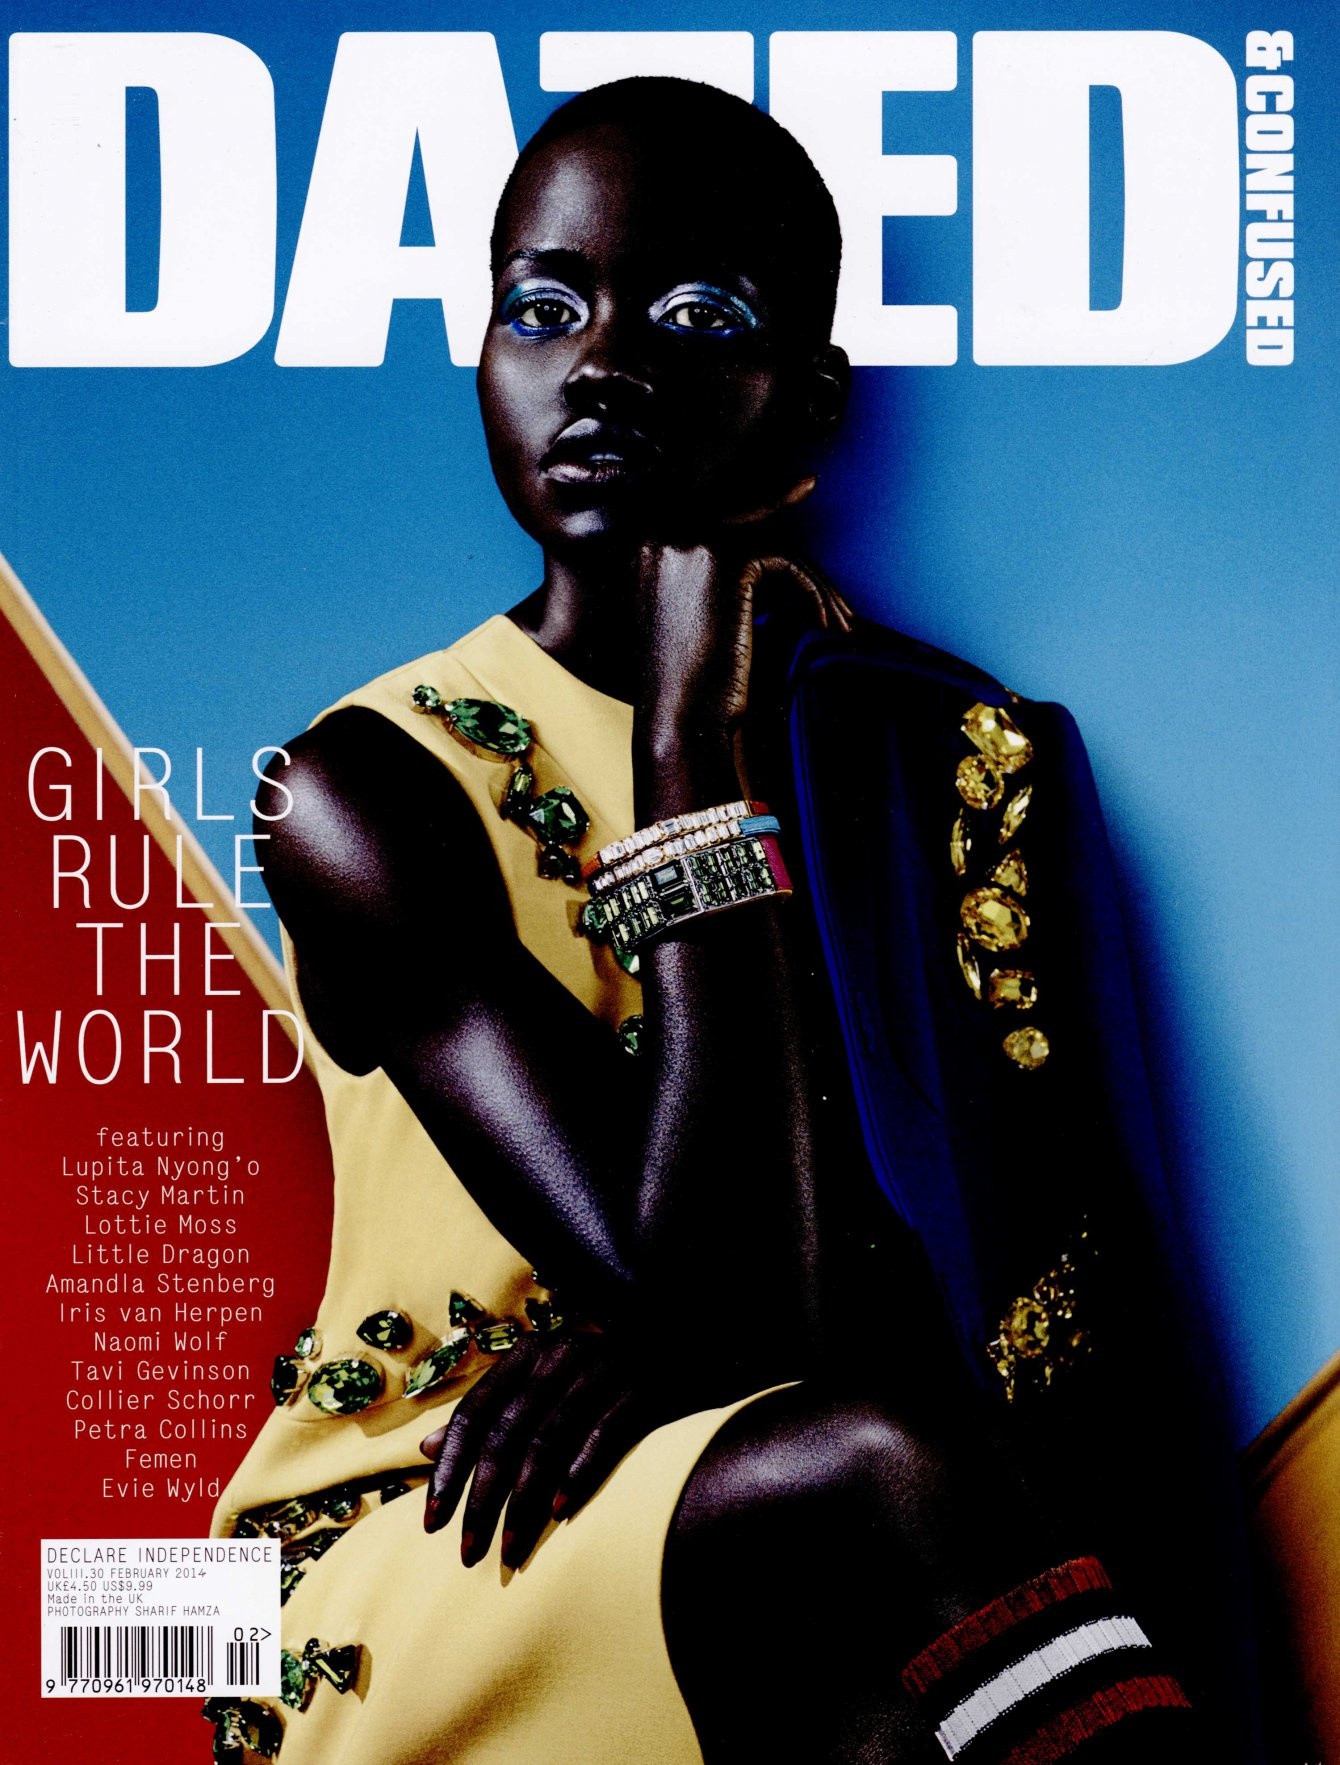 DAZED UNITED KINGDOM feb 14 IRIS VAN HERPEN cover